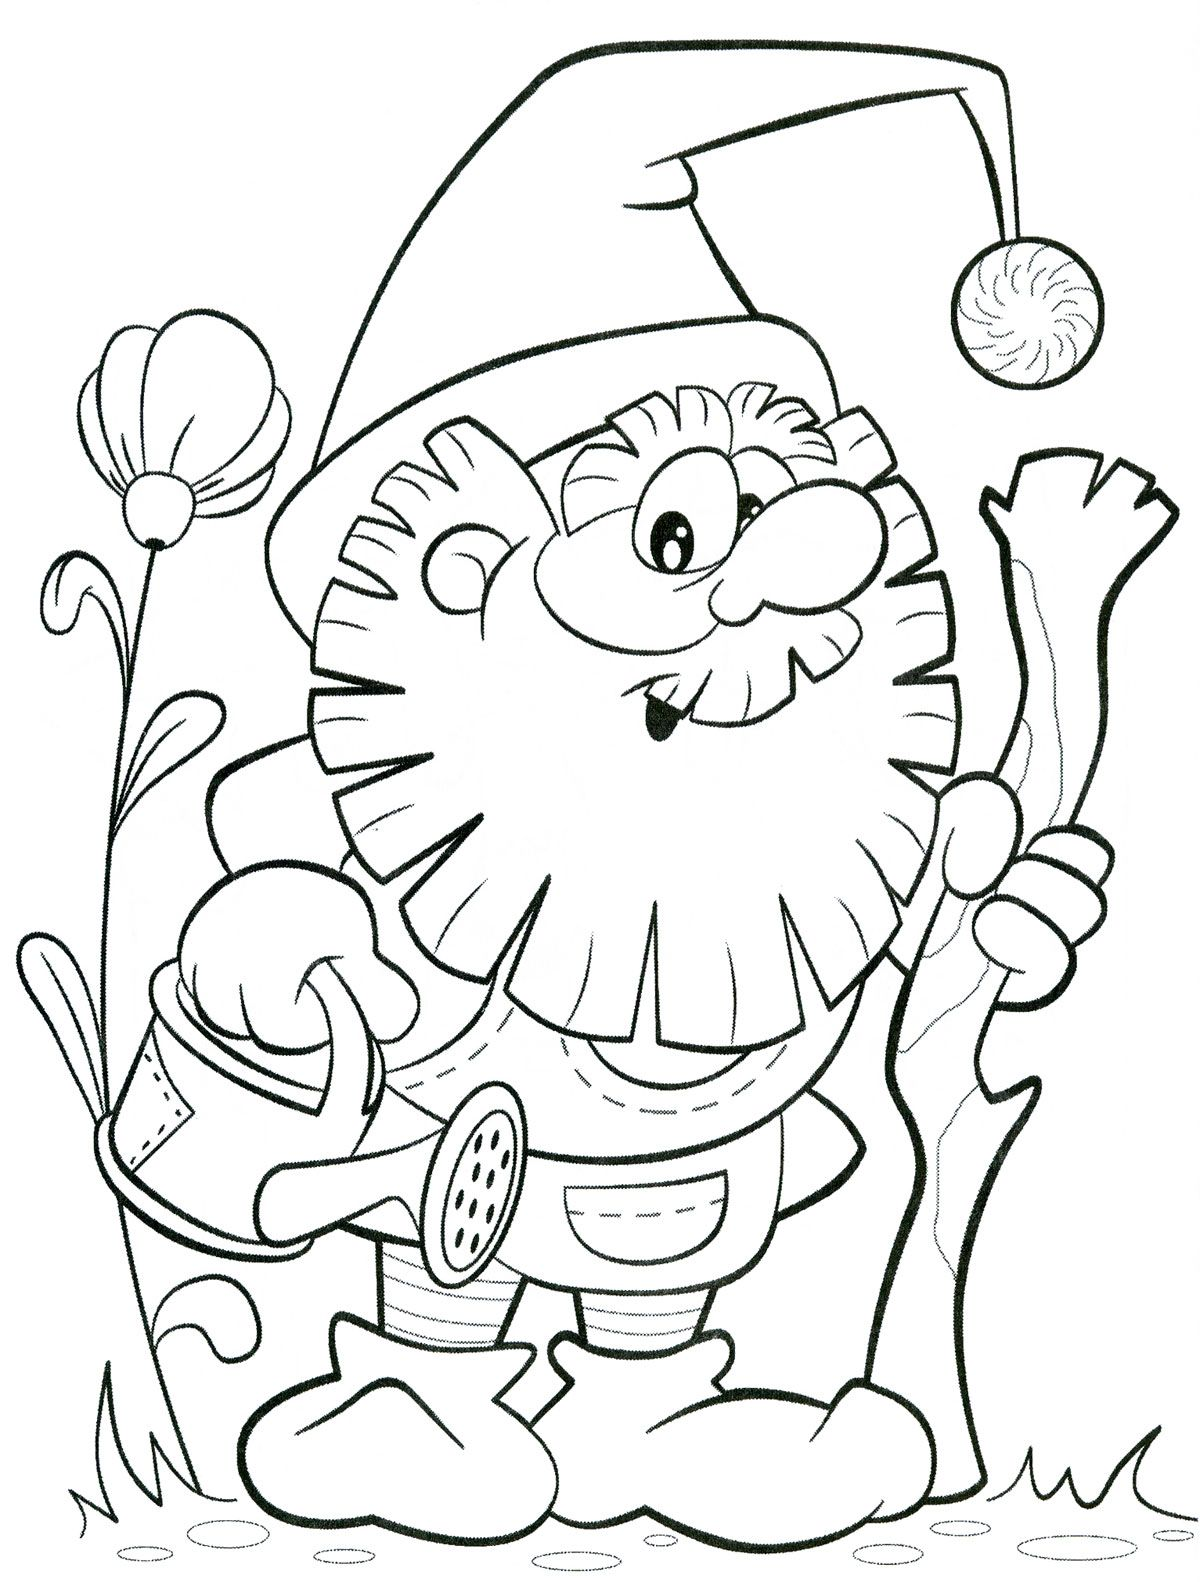 Pin by Kristi on gnome printables Sketches, Art, Female